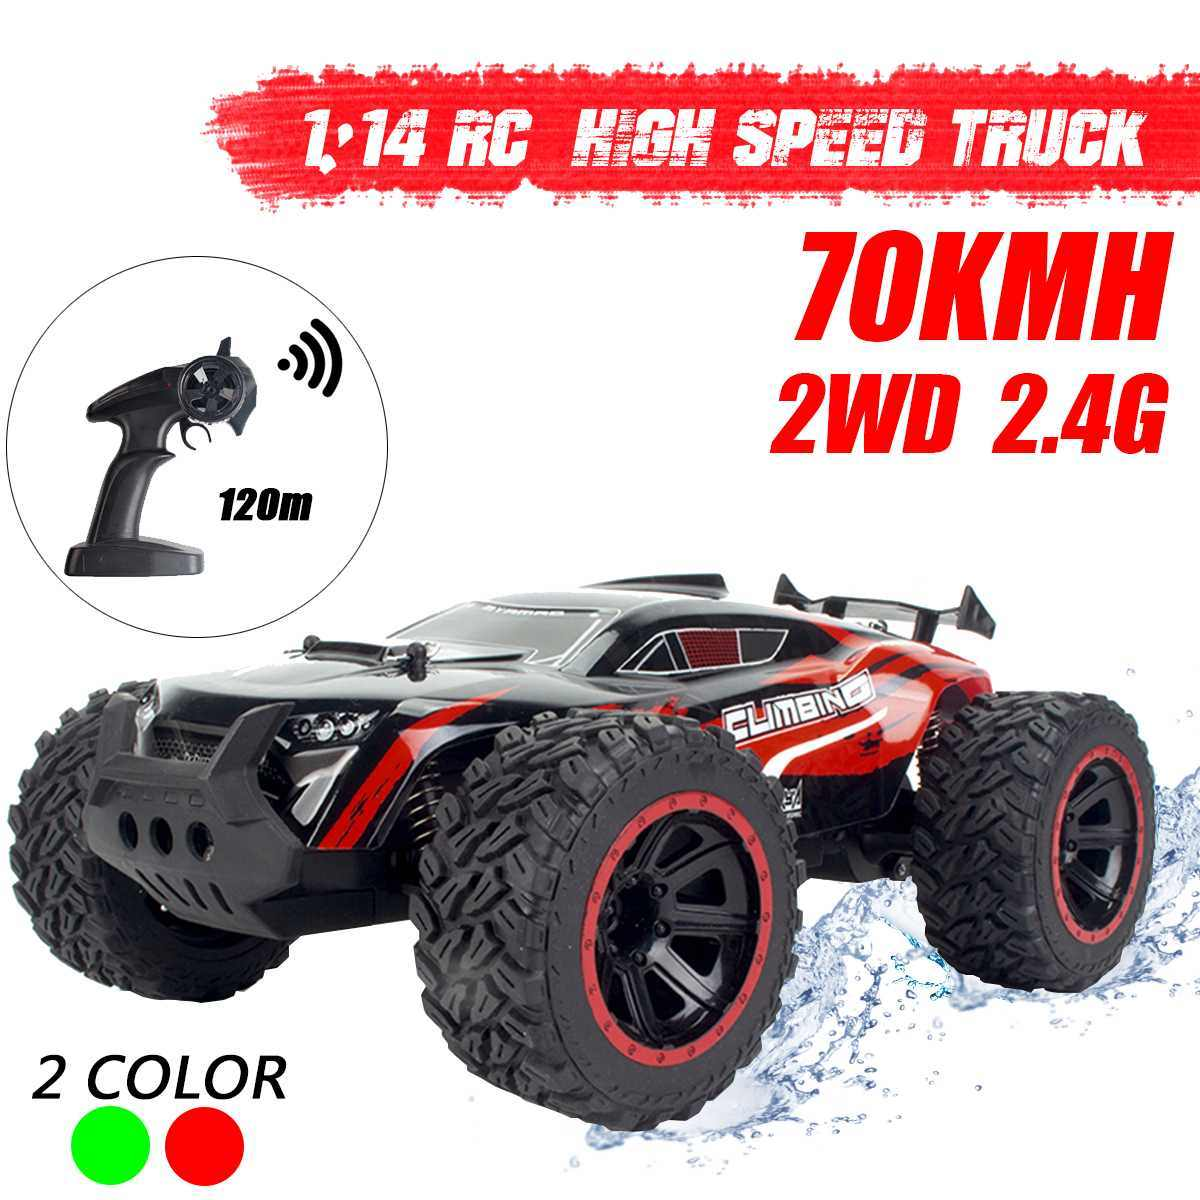 1:14 70 Km/h 2WD Rc Afstandsbediening Off Road Racing Auto Voertuig 2.4Ghz Crawlers Elektrische Monster Truck Rc